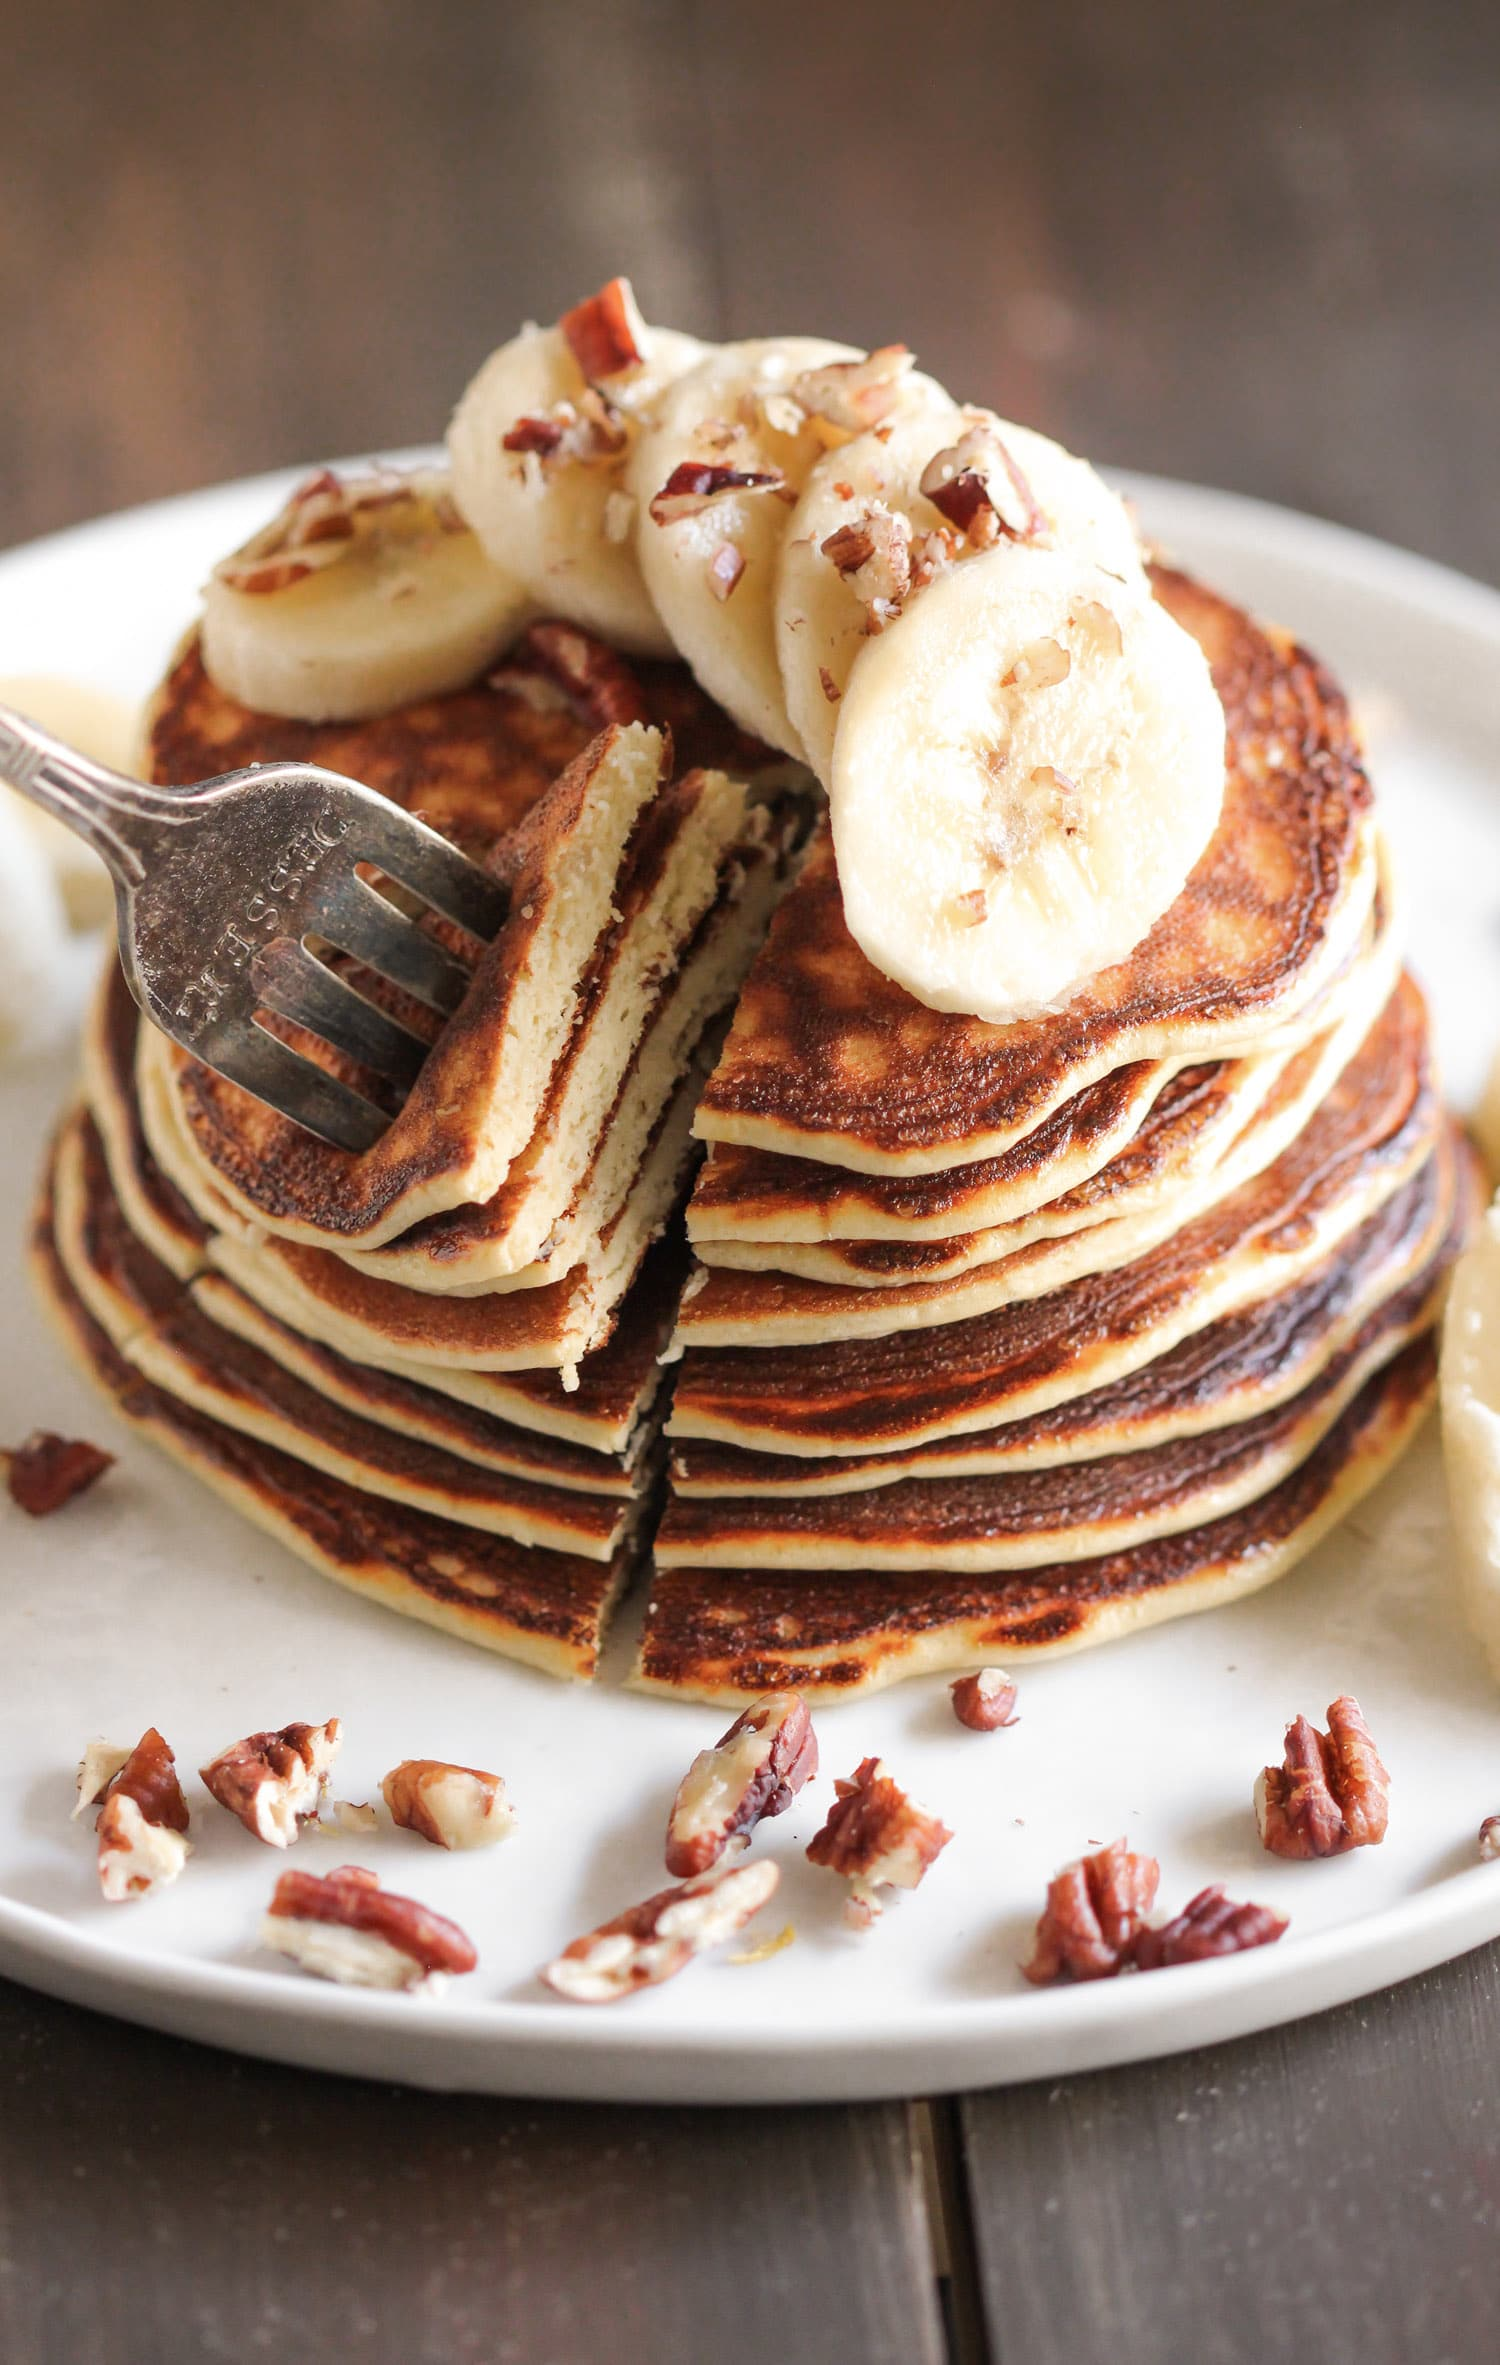 These Healthy Banana Protein Pancakes are uber light and fluffy, and they're perfectly sweet too. One bite and you won't be able to tell they're gluten free, refined sugar free, low fat, and packed with a whopping 22g of protein per serving! Healthy Dessert Recipes at the Desserts With Benefits Blog (www.DessertsWithBenefits.com)